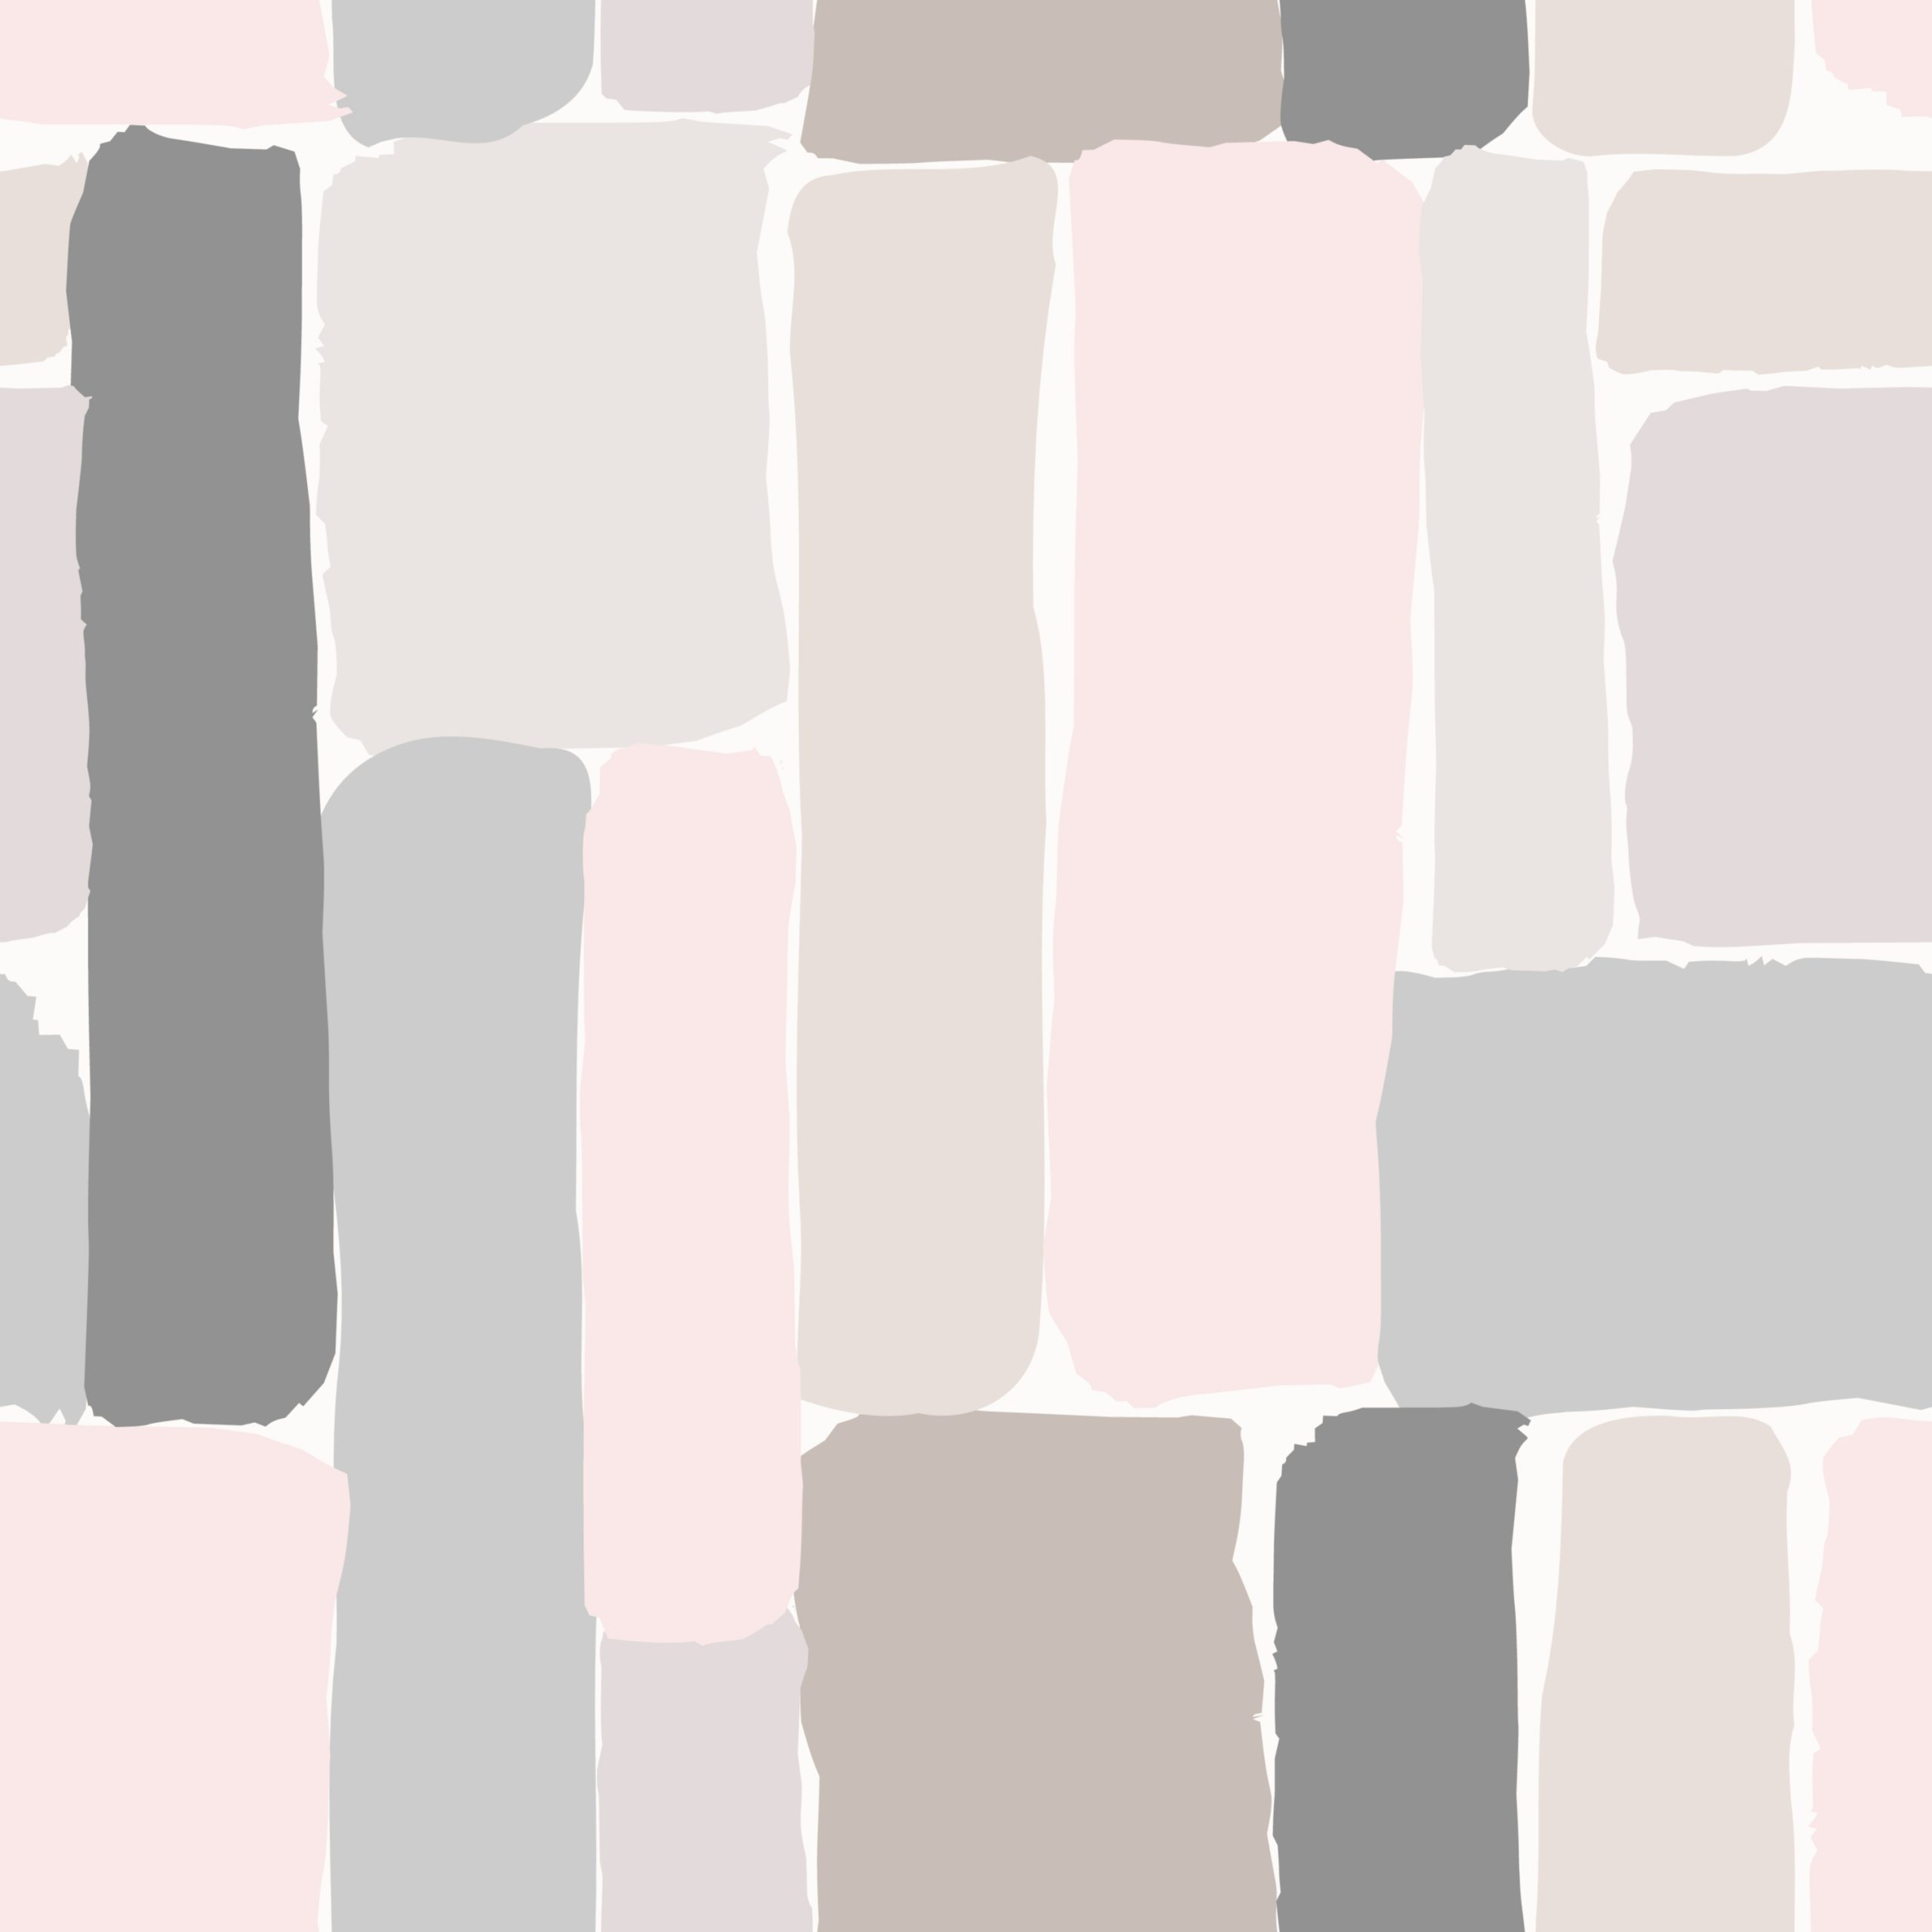 Seamless repeating pattern with hand drawn elements in pastel colors on cream background.